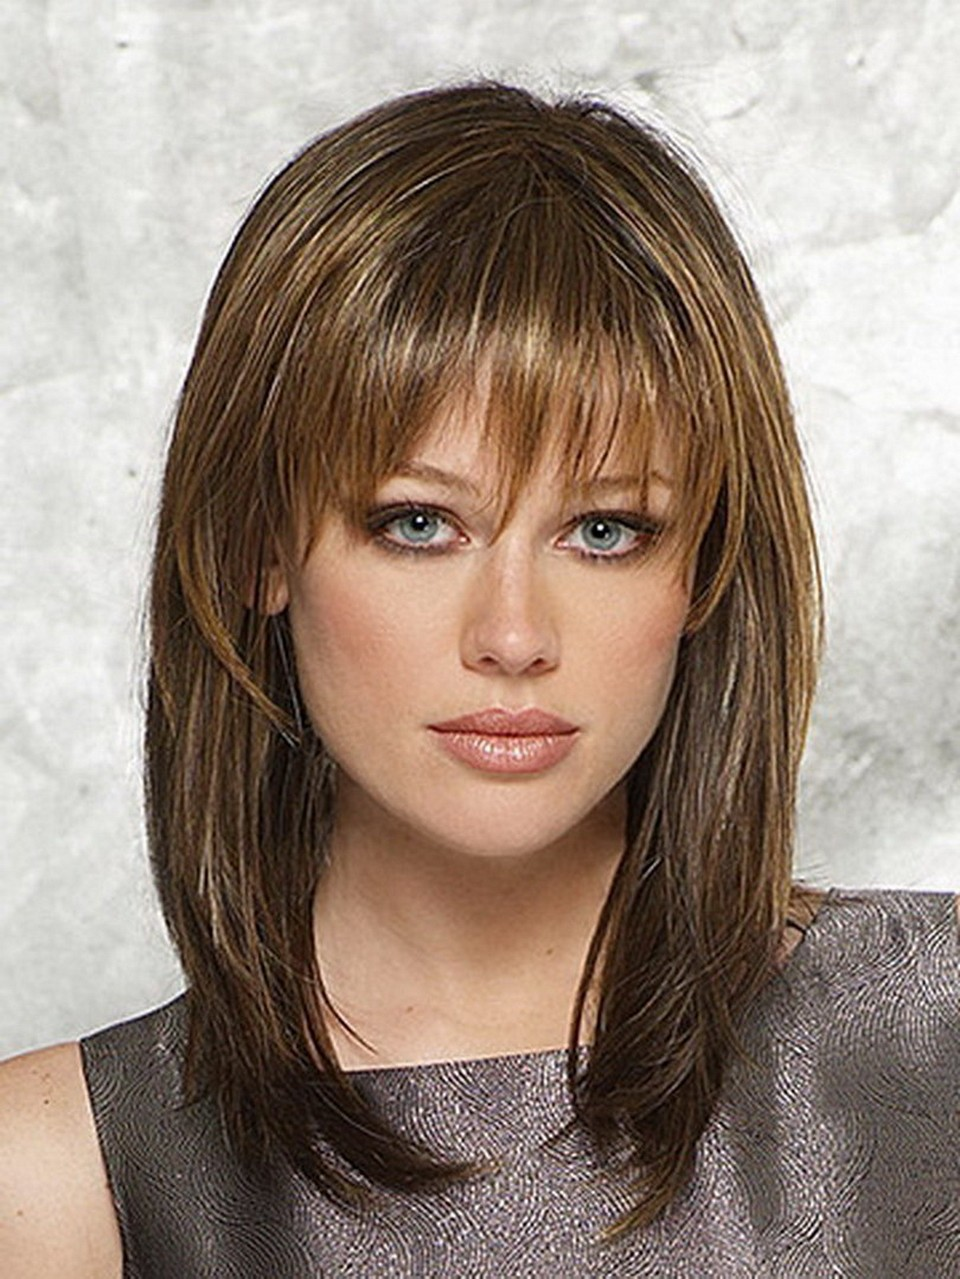 Hot Sale 14inch Latest Medium Length Hairstyles Heat Resistant Synthetic Straight Natural Womens Wigs With Bangs Free Shipping<br><br>Aliexpress